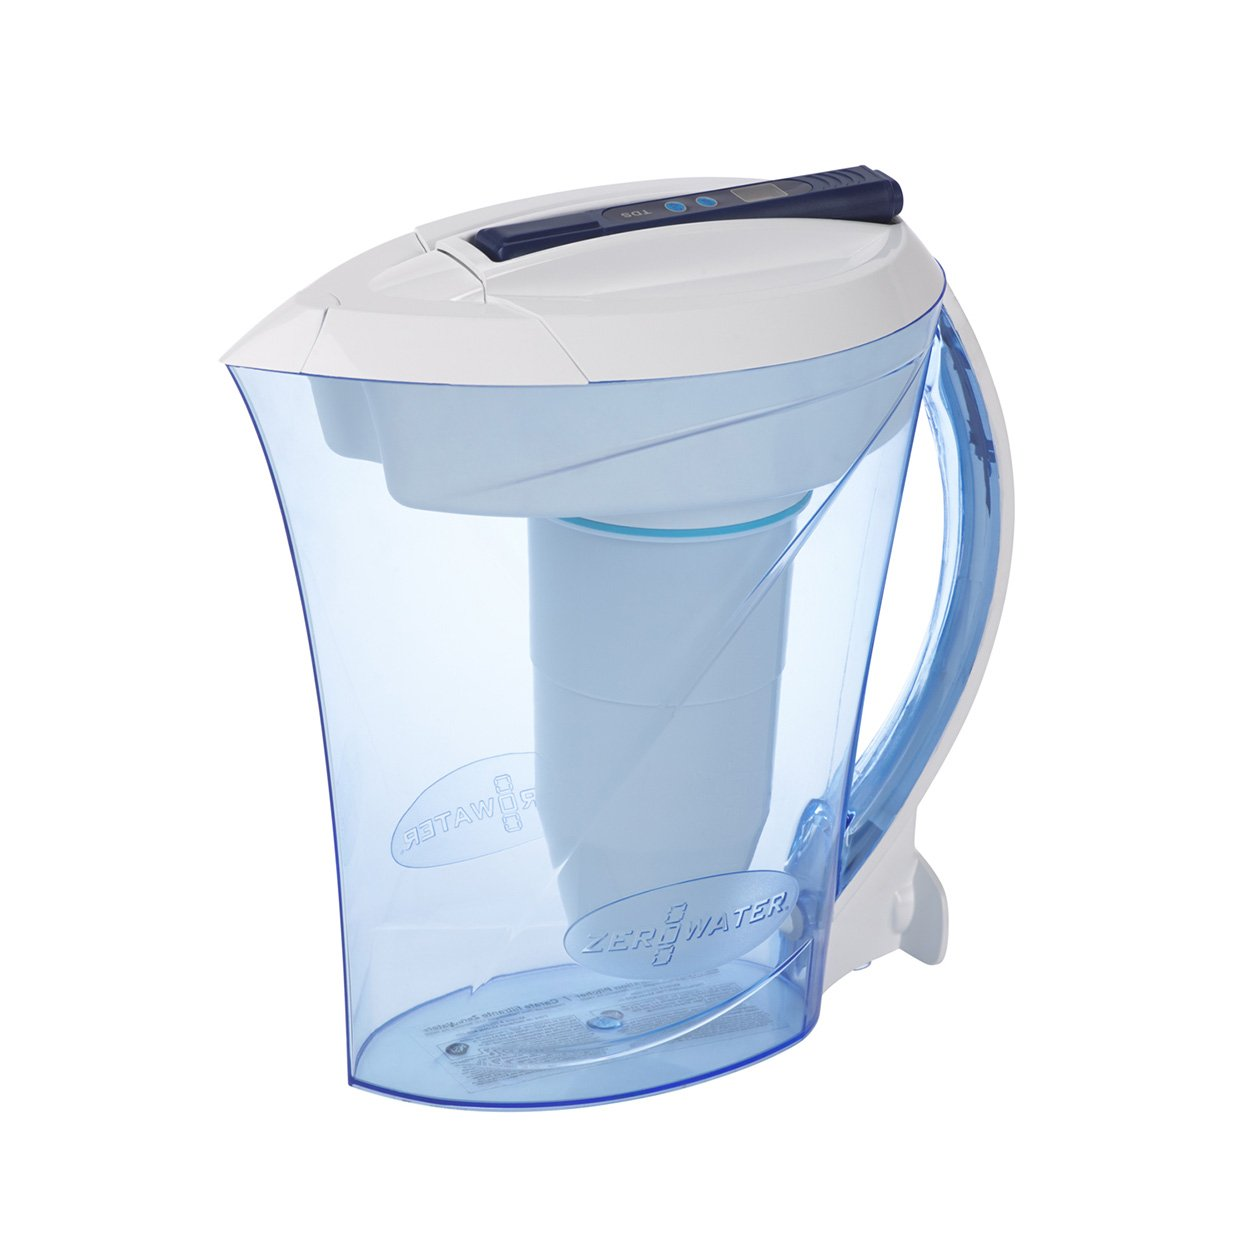 ZeroWater 10 Cup Water Filter Jug | Everyday Use Water Jug with 5 Stage Filtration System, Water Quality Meter and Water Filter Cartridge Included, 2.3 litres LEPKTSN10699